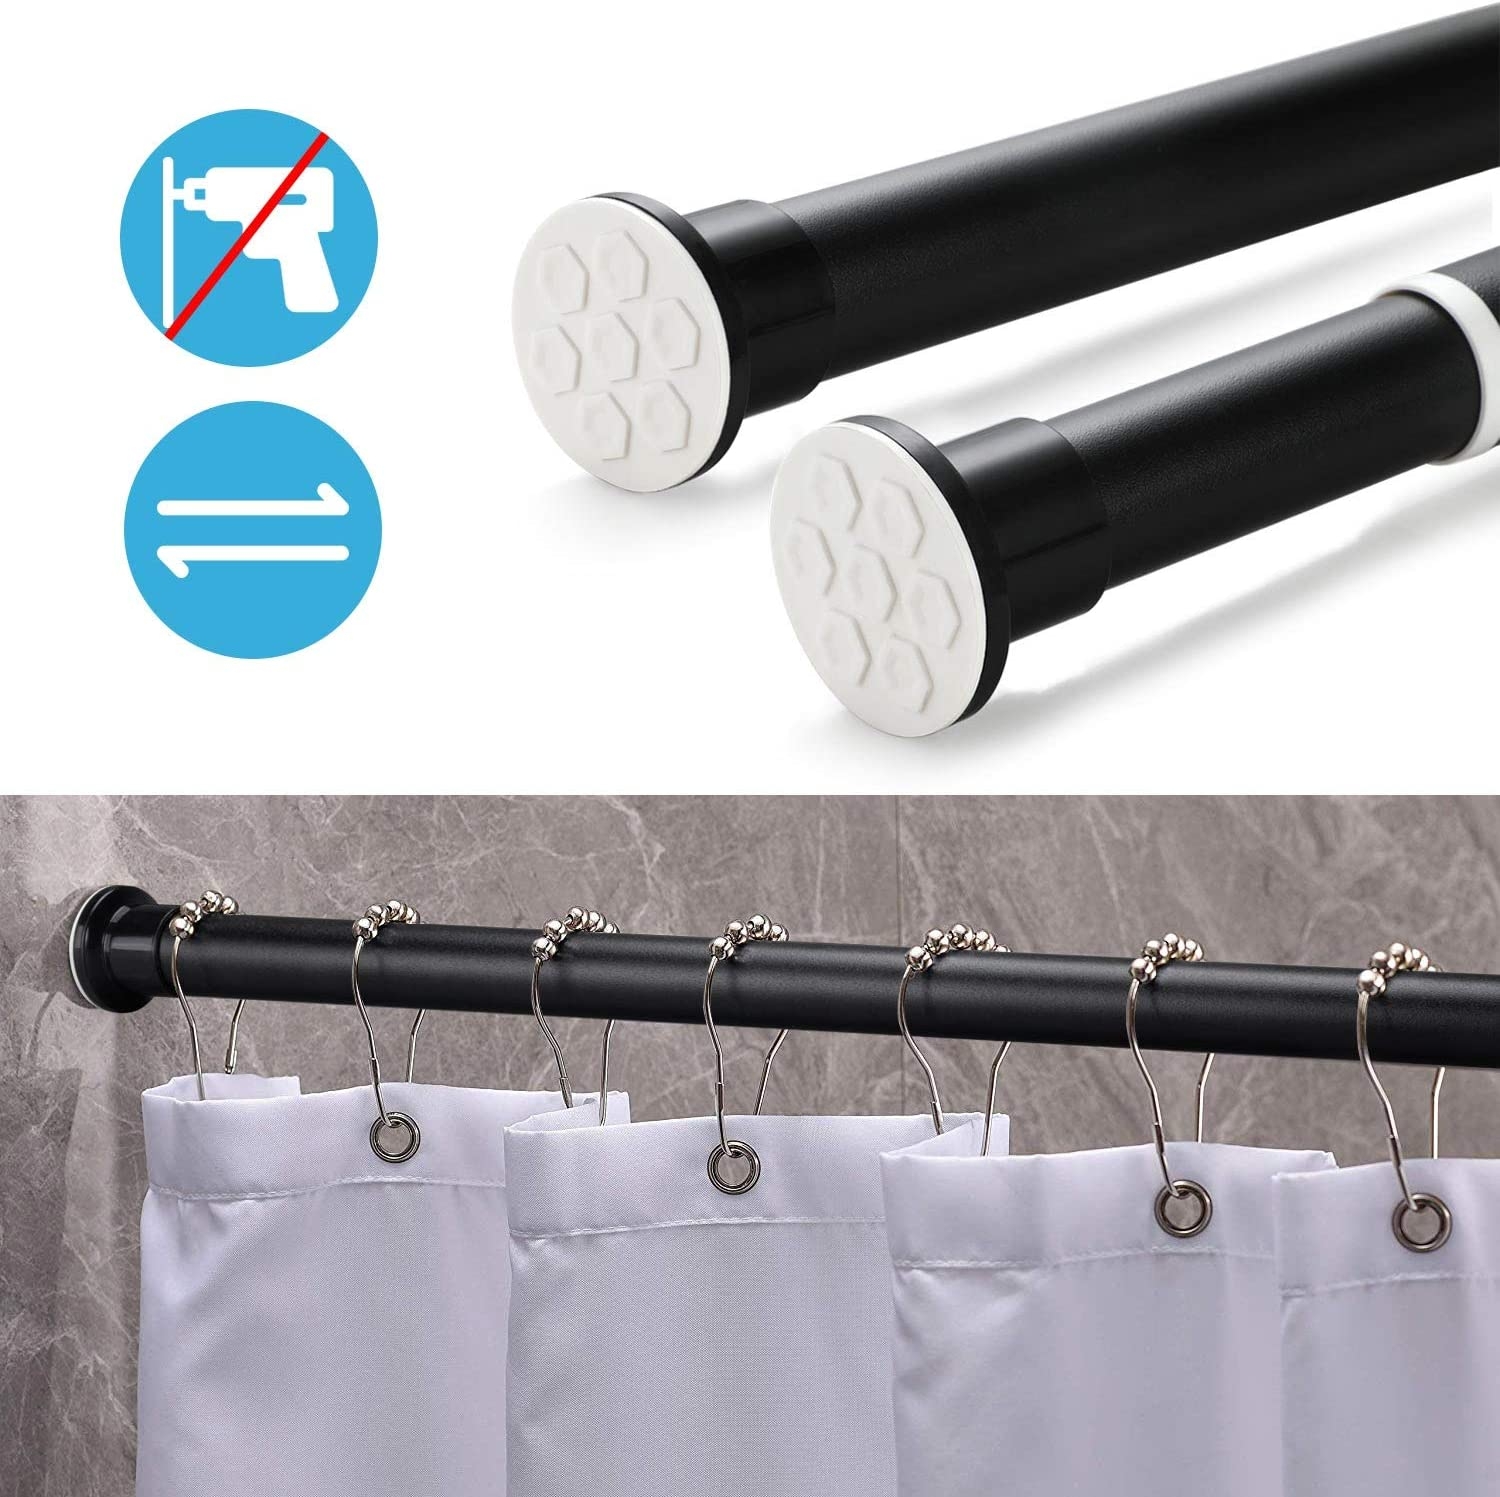 Superior Load Capacity Tension Rod for Kitchen and Curtain Kinlo Telescopic Shower Curtain Rod,310-360 cm no Drilling Required Matte Black Clamping rods Stainless Steel Curtain Rod